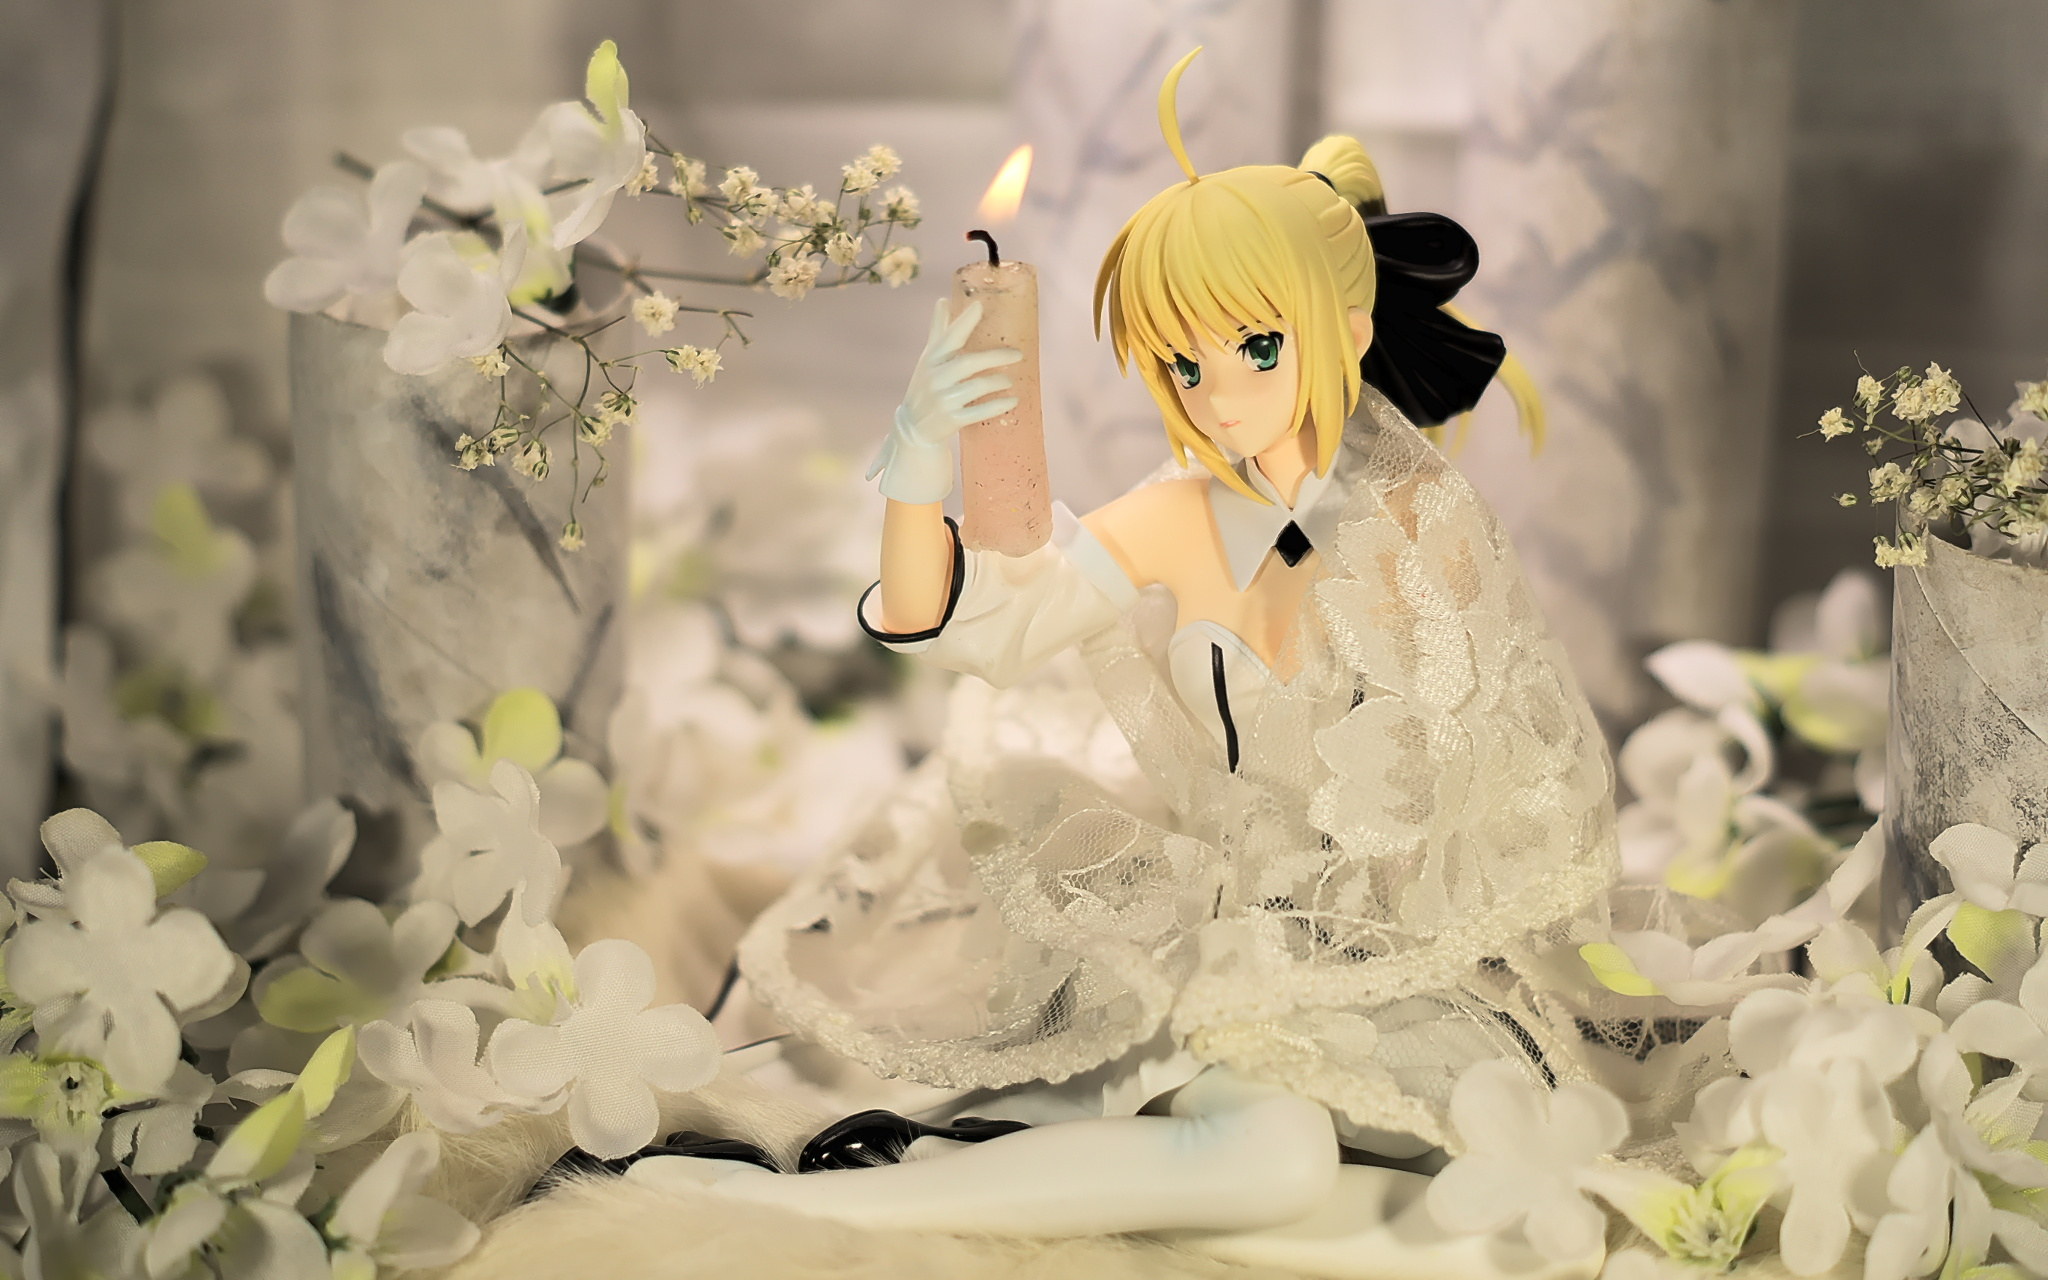 type_moon saber_lily fate/stay_night 2% alphamax